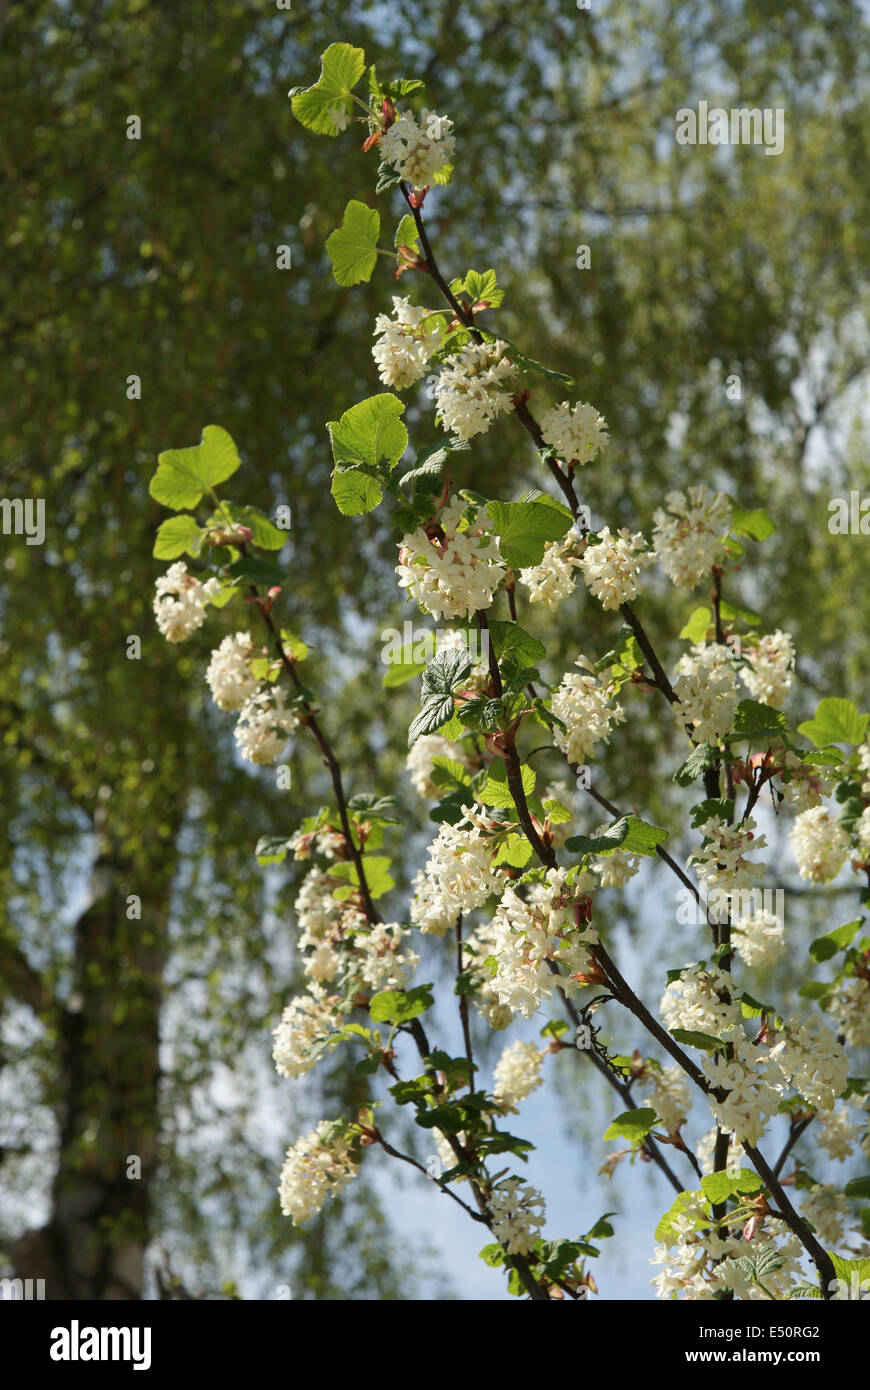 White flowering currant stock photo 71933234 alamy white flowering currant mightylinksfo